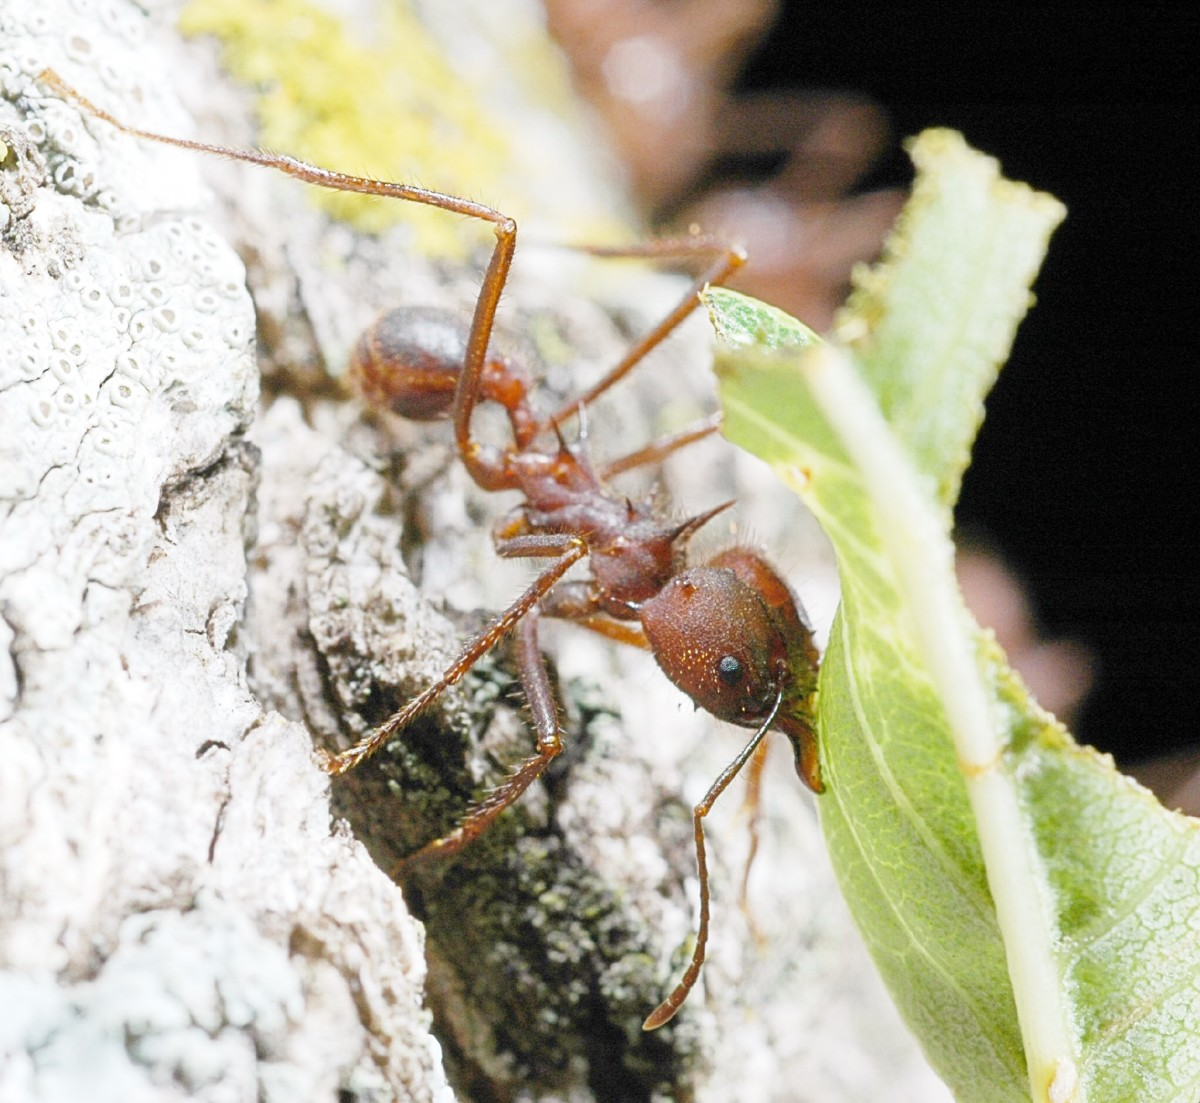 A leafcutter ant at work